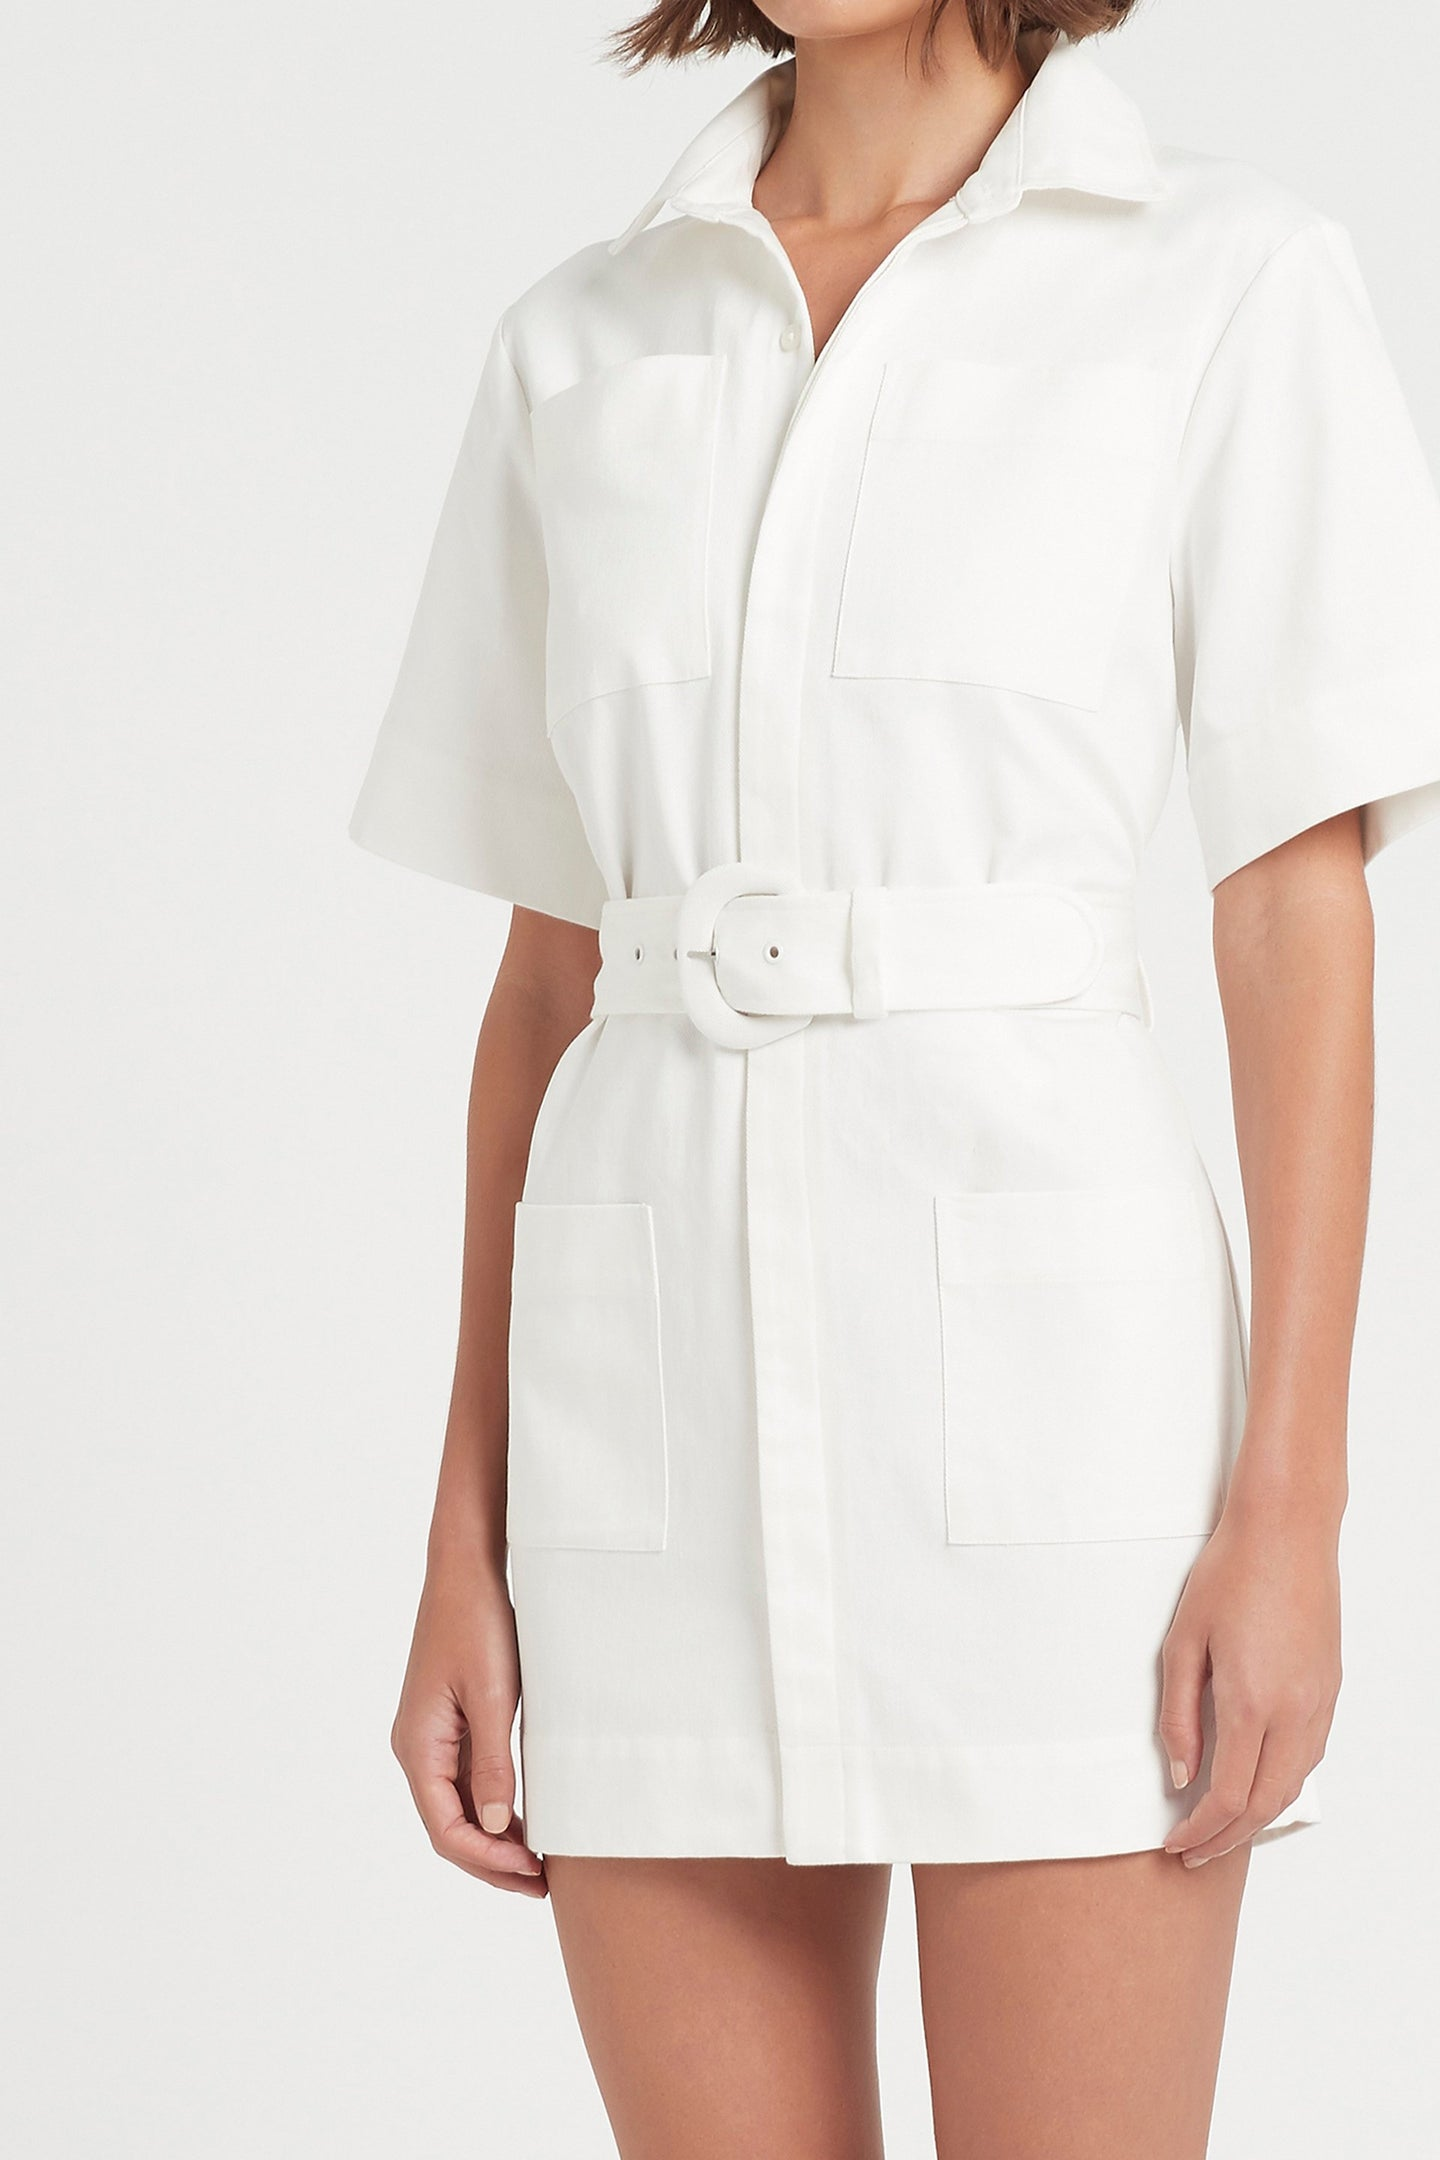 SIR the label SABINE BUTTON DOWN MINI DRESS IVORY